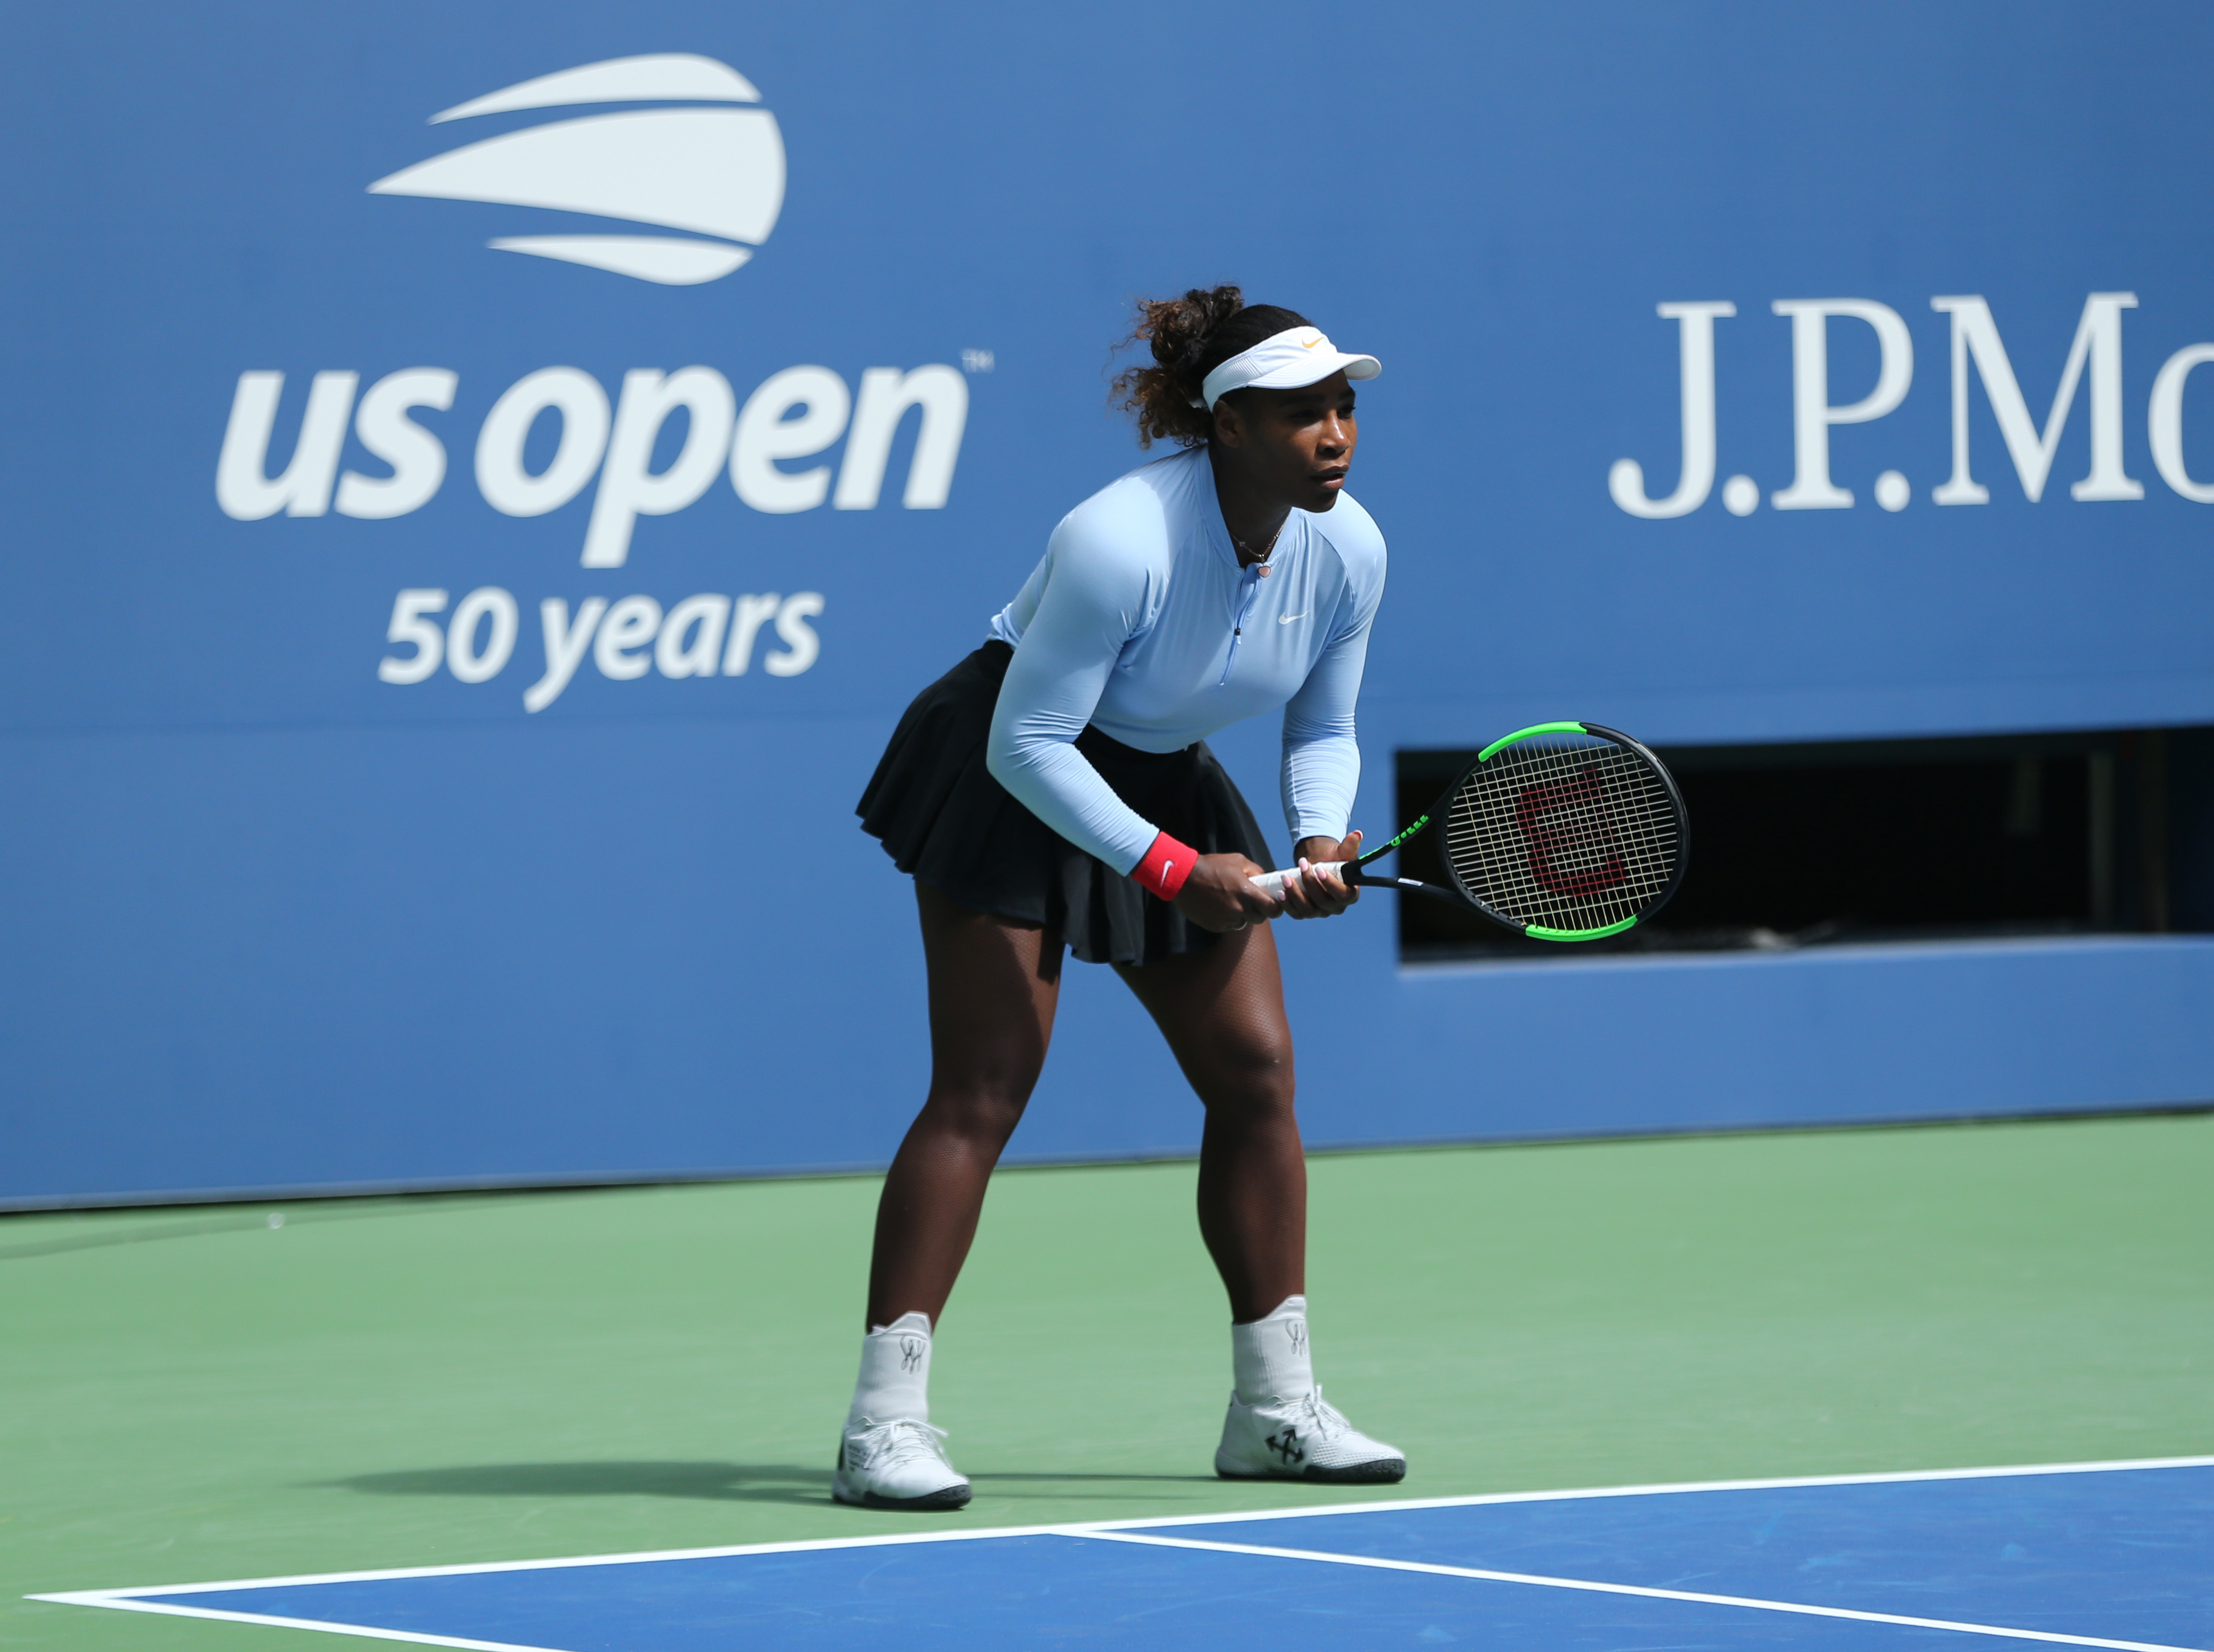 Serena Williams practices for the U.S. Open in New York, New York on Aug. 23, 2018.